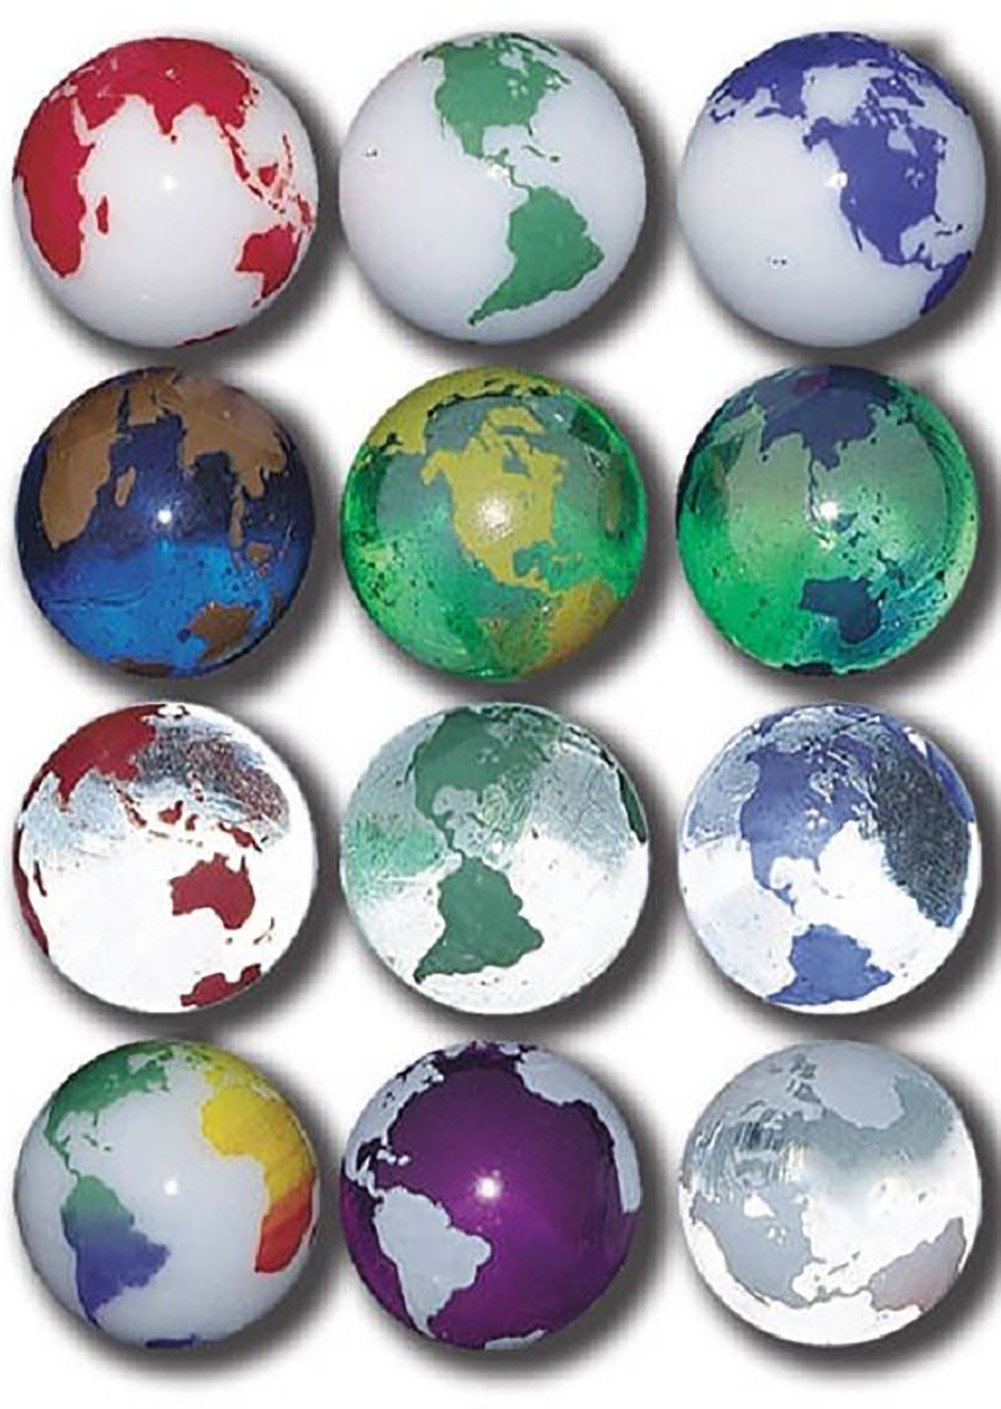 """Unique & Custom {7/8'' Inch} Set Of 50 Big """"Round"""" Opaque & Clear Marbles Made of Glass for Filling Vases, Games & Decor w/ Vibrant Educational Rainbow Earth Globe Cool Design [Assorted Colors]"""